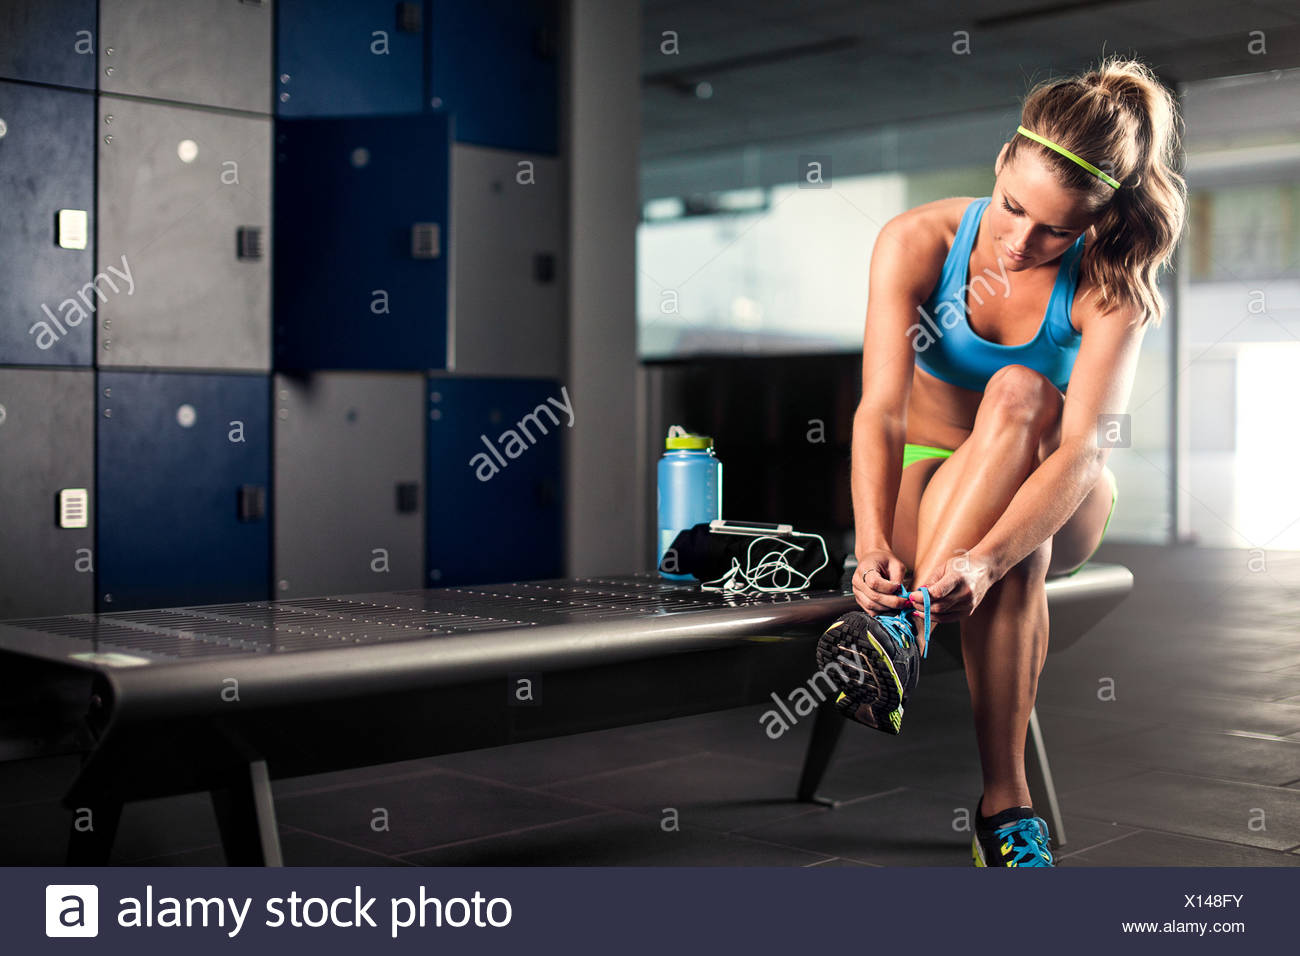 Young woman tying trainer lace in gym - Stock Image